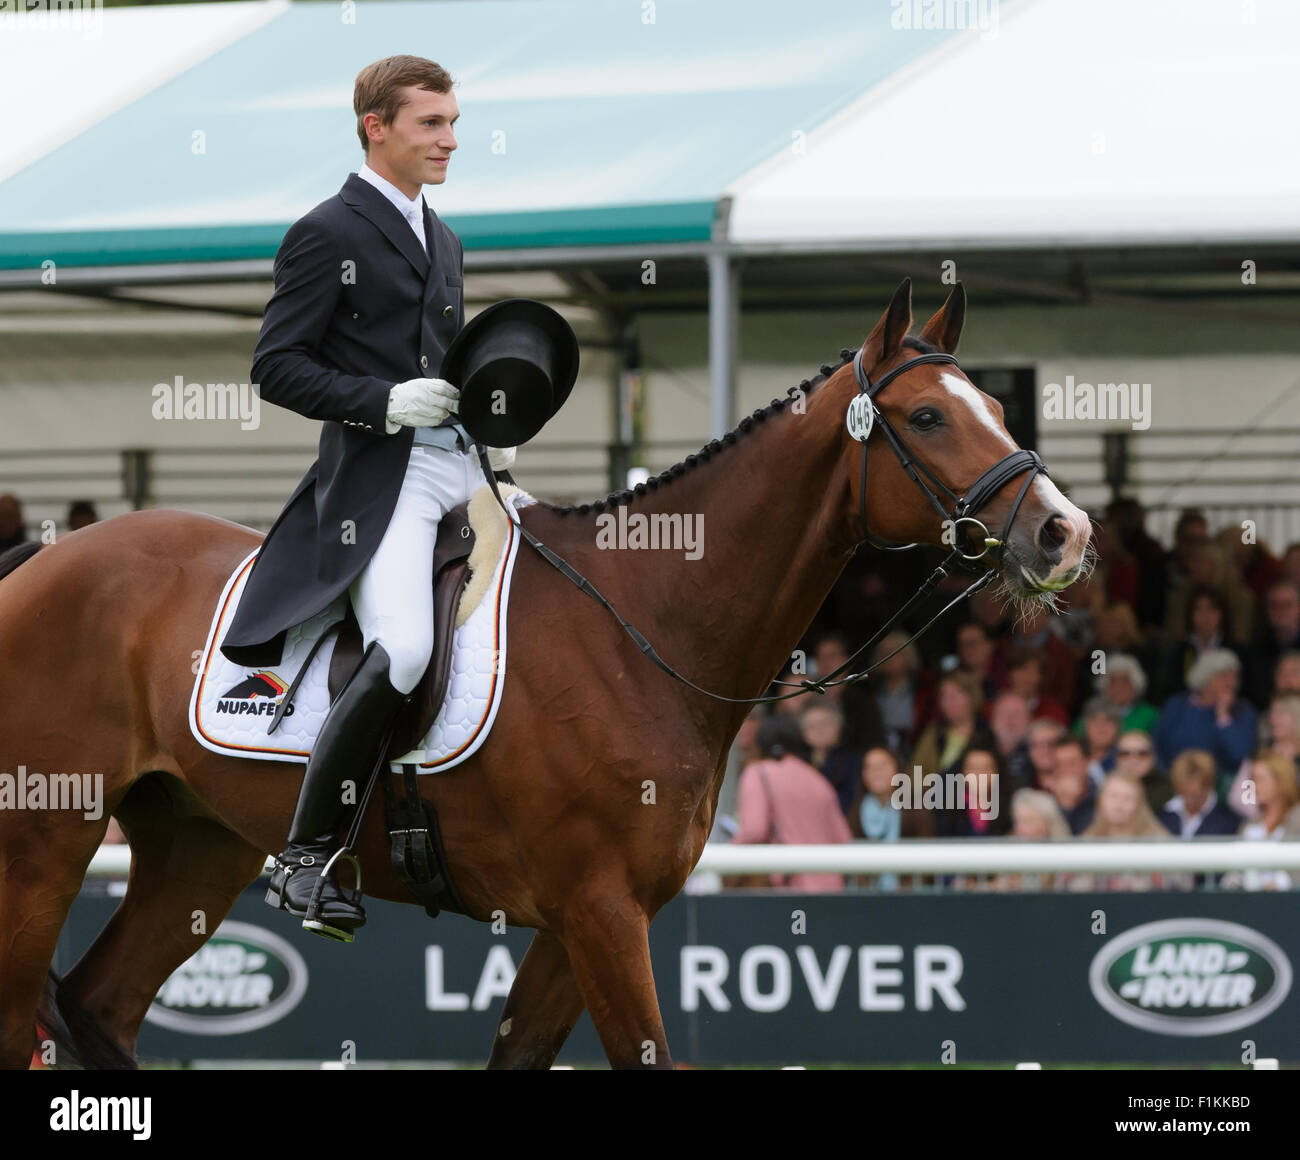 Burghley House, Stamford ,UK, 3rd Sept 2015. Nicklas Bschorer and TOM TOM GO 3 are in third place after day 1 of - Stock Image